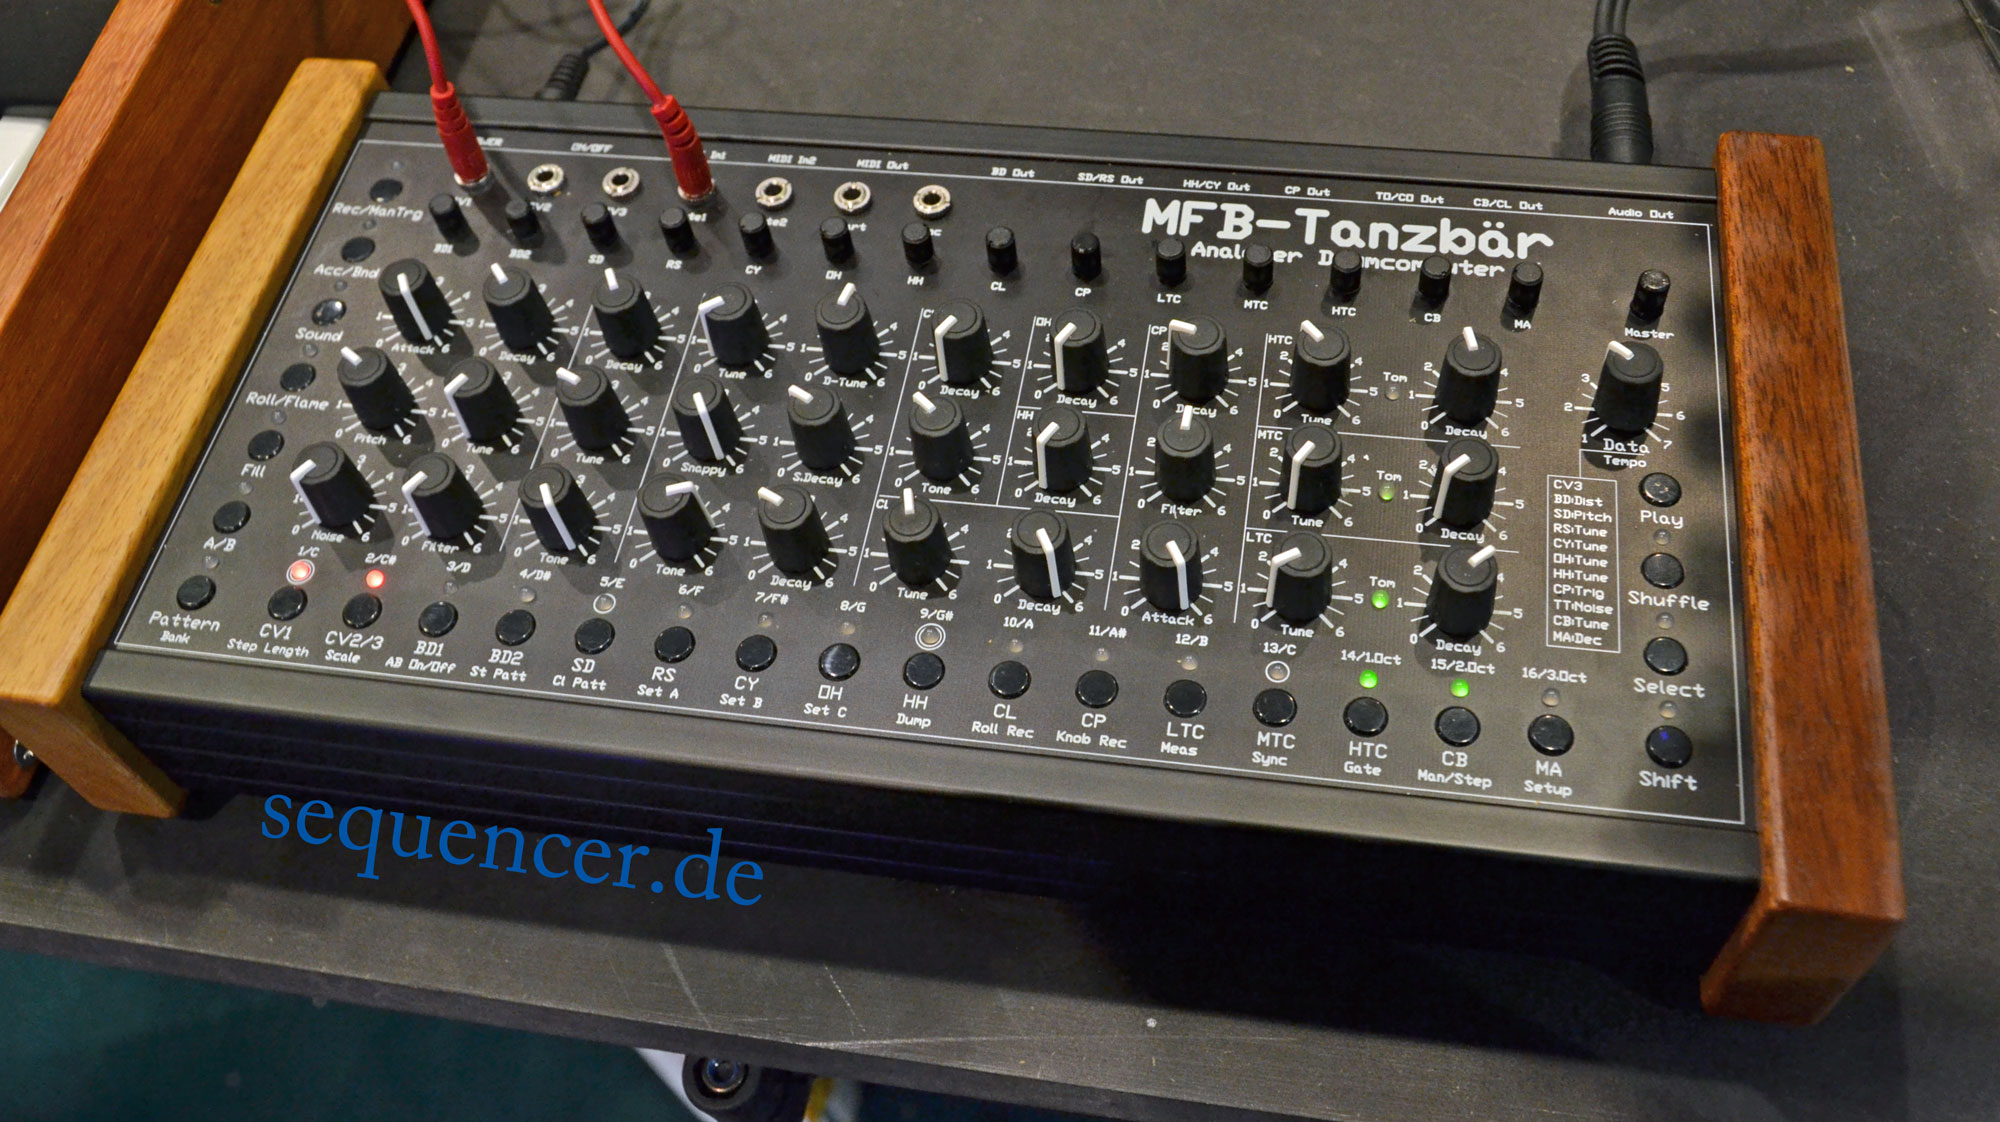 MFB Tanzbaer synthesizer